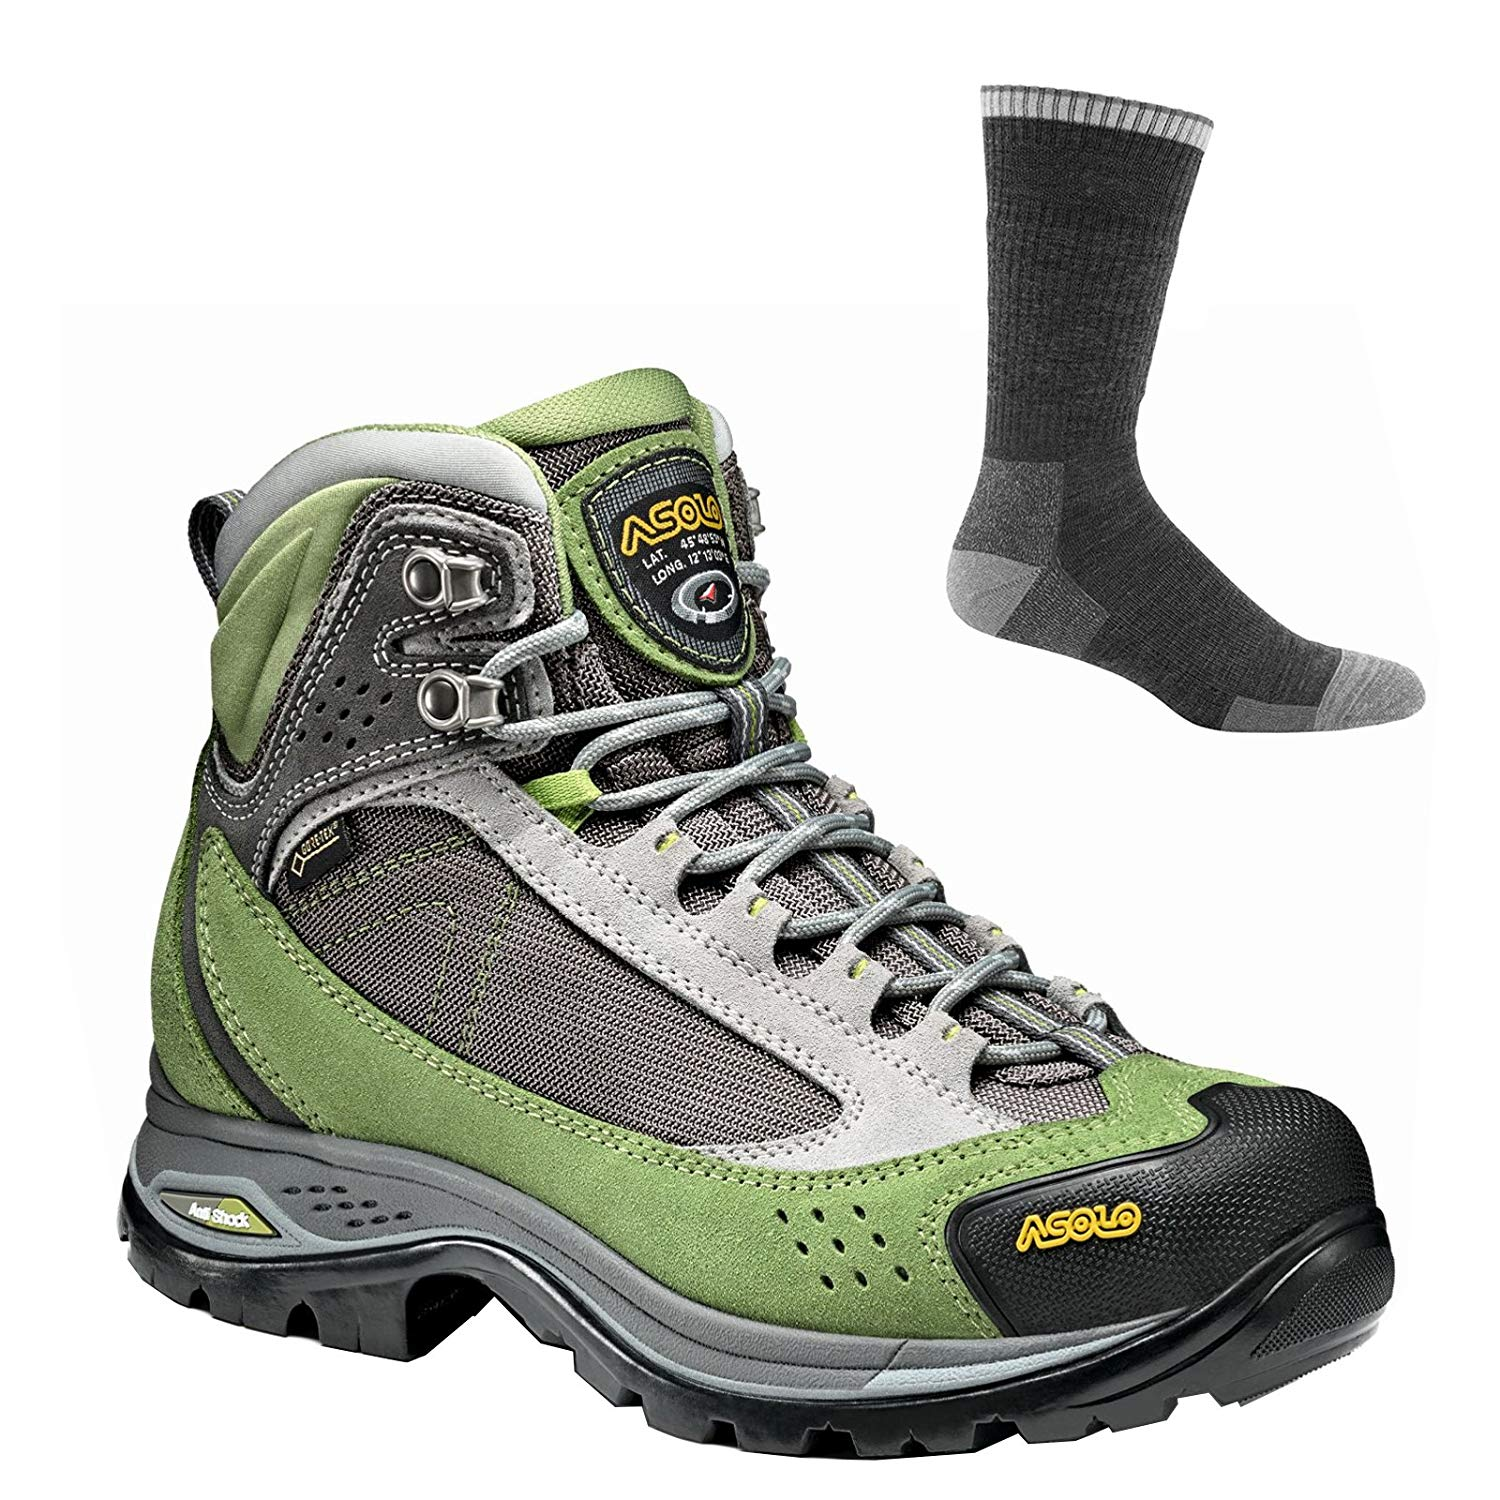 57b81fe73b9 Cheap Asolo Hiking Boots, find Asolo Hiking Boots deals on line at ...